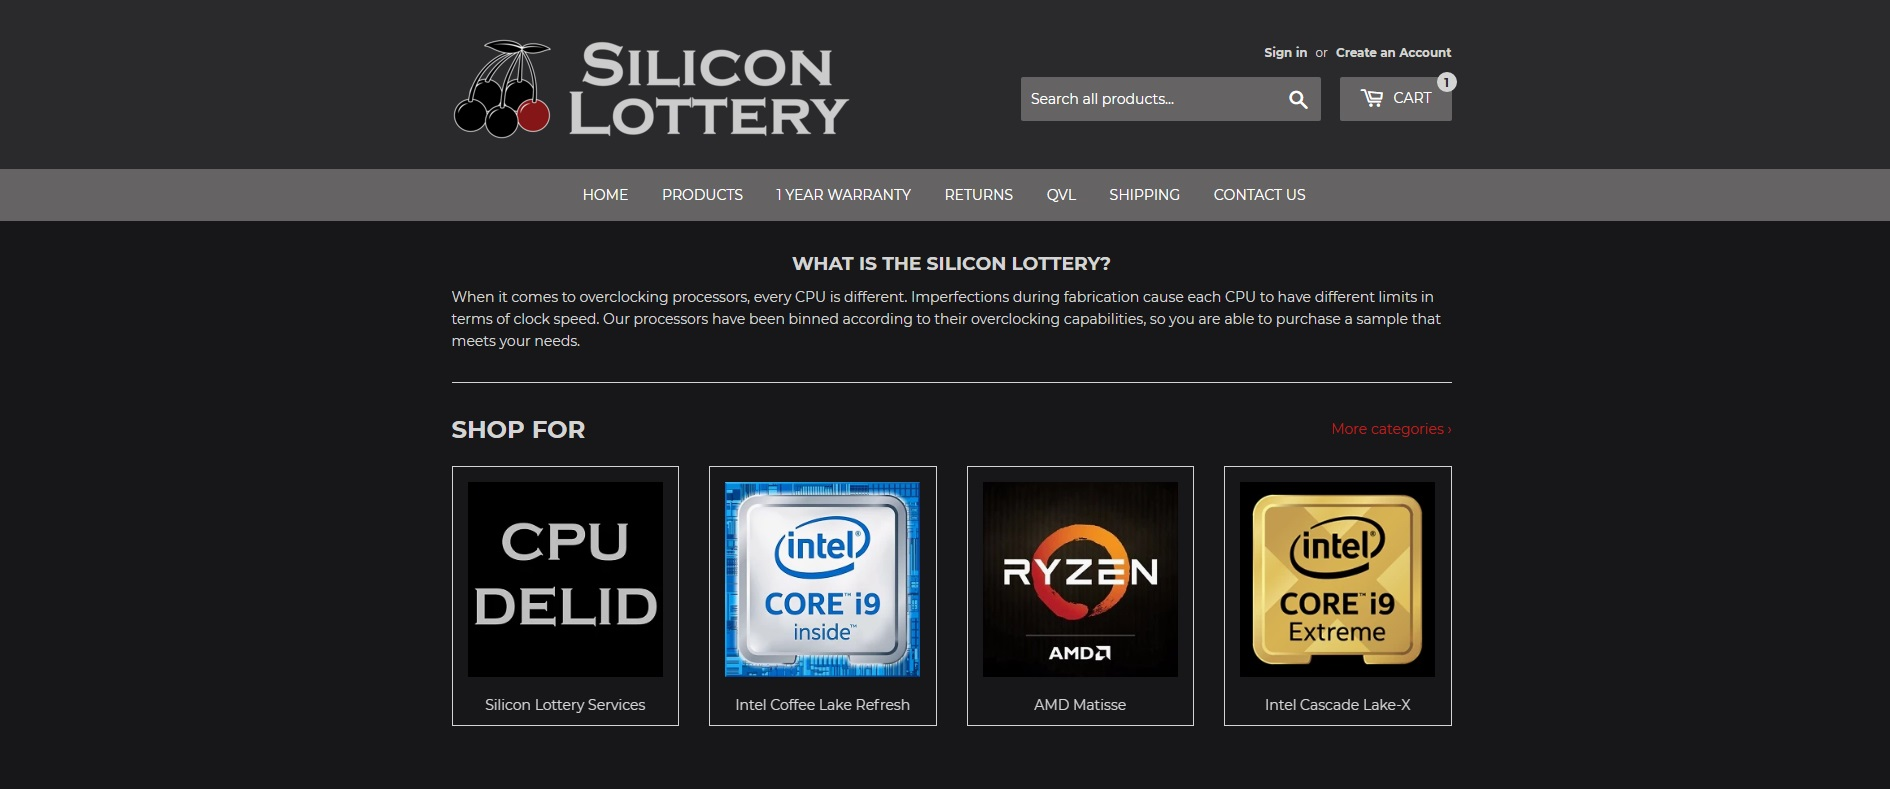 Silicon Lottery